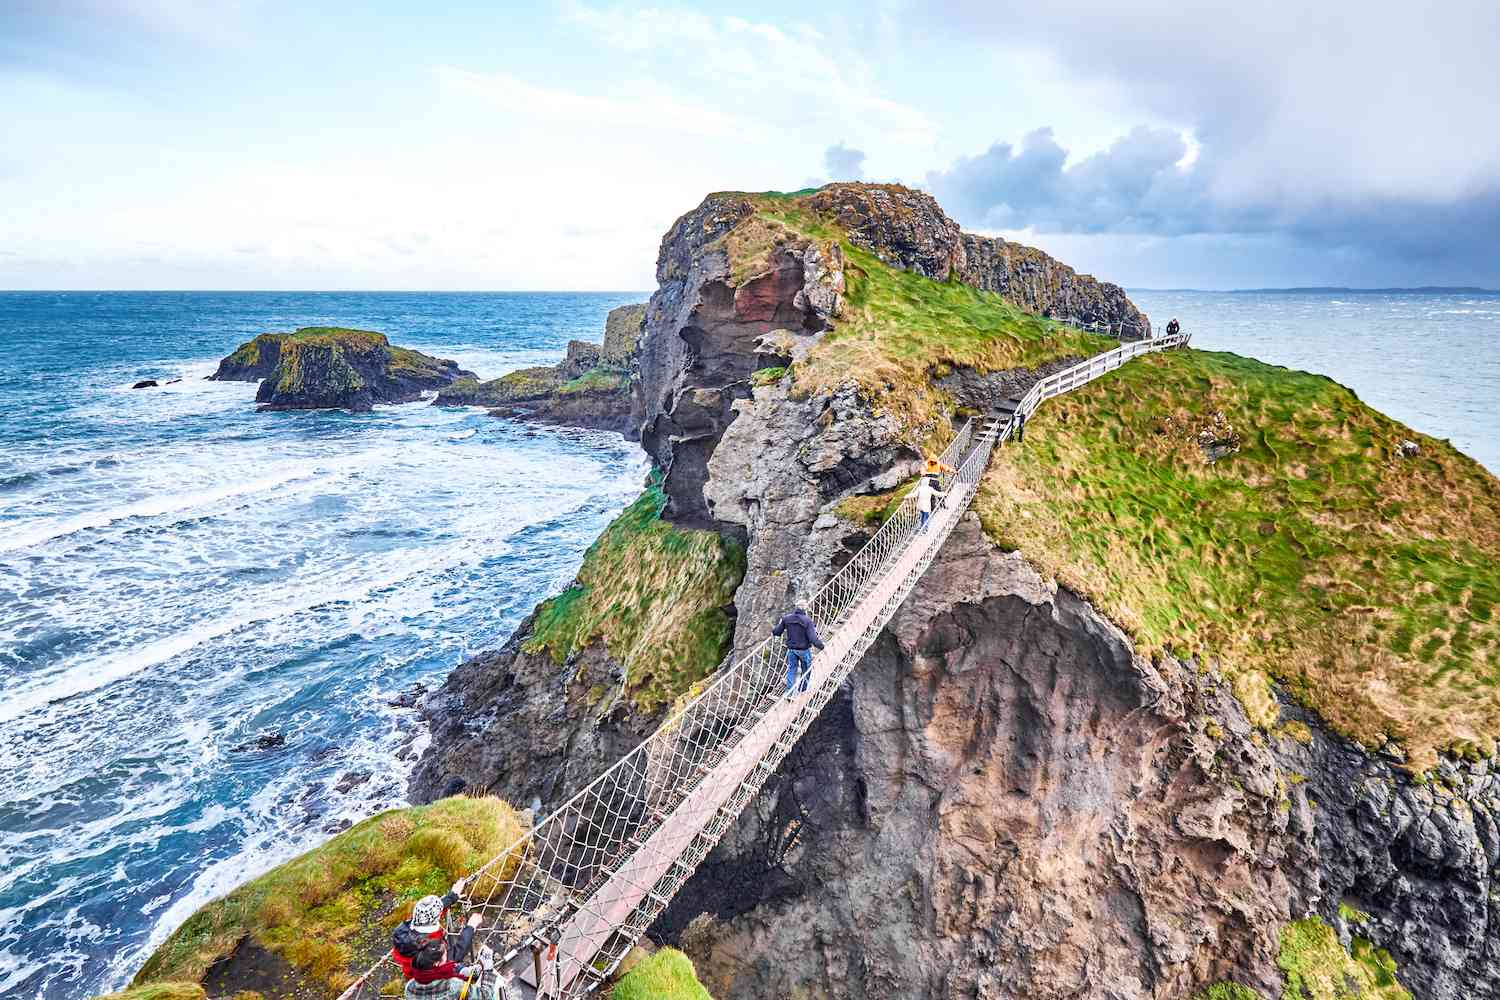 A suspended bridge connects to a small rocky island by the ocean